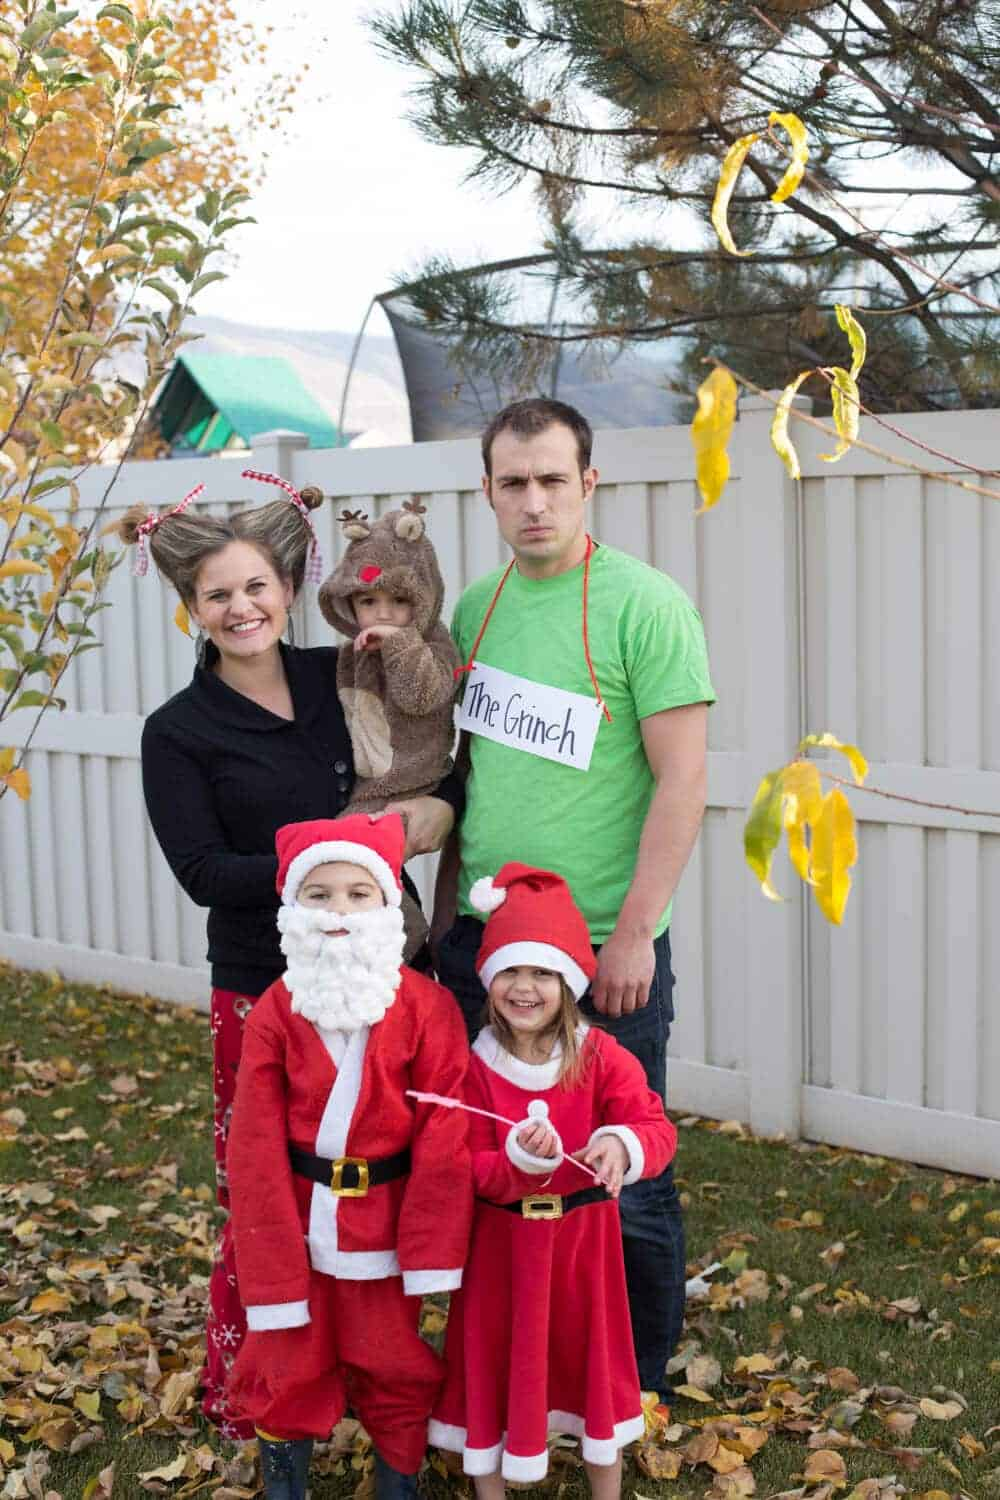 family halloween costume idea- merry halloween-christmas costumes